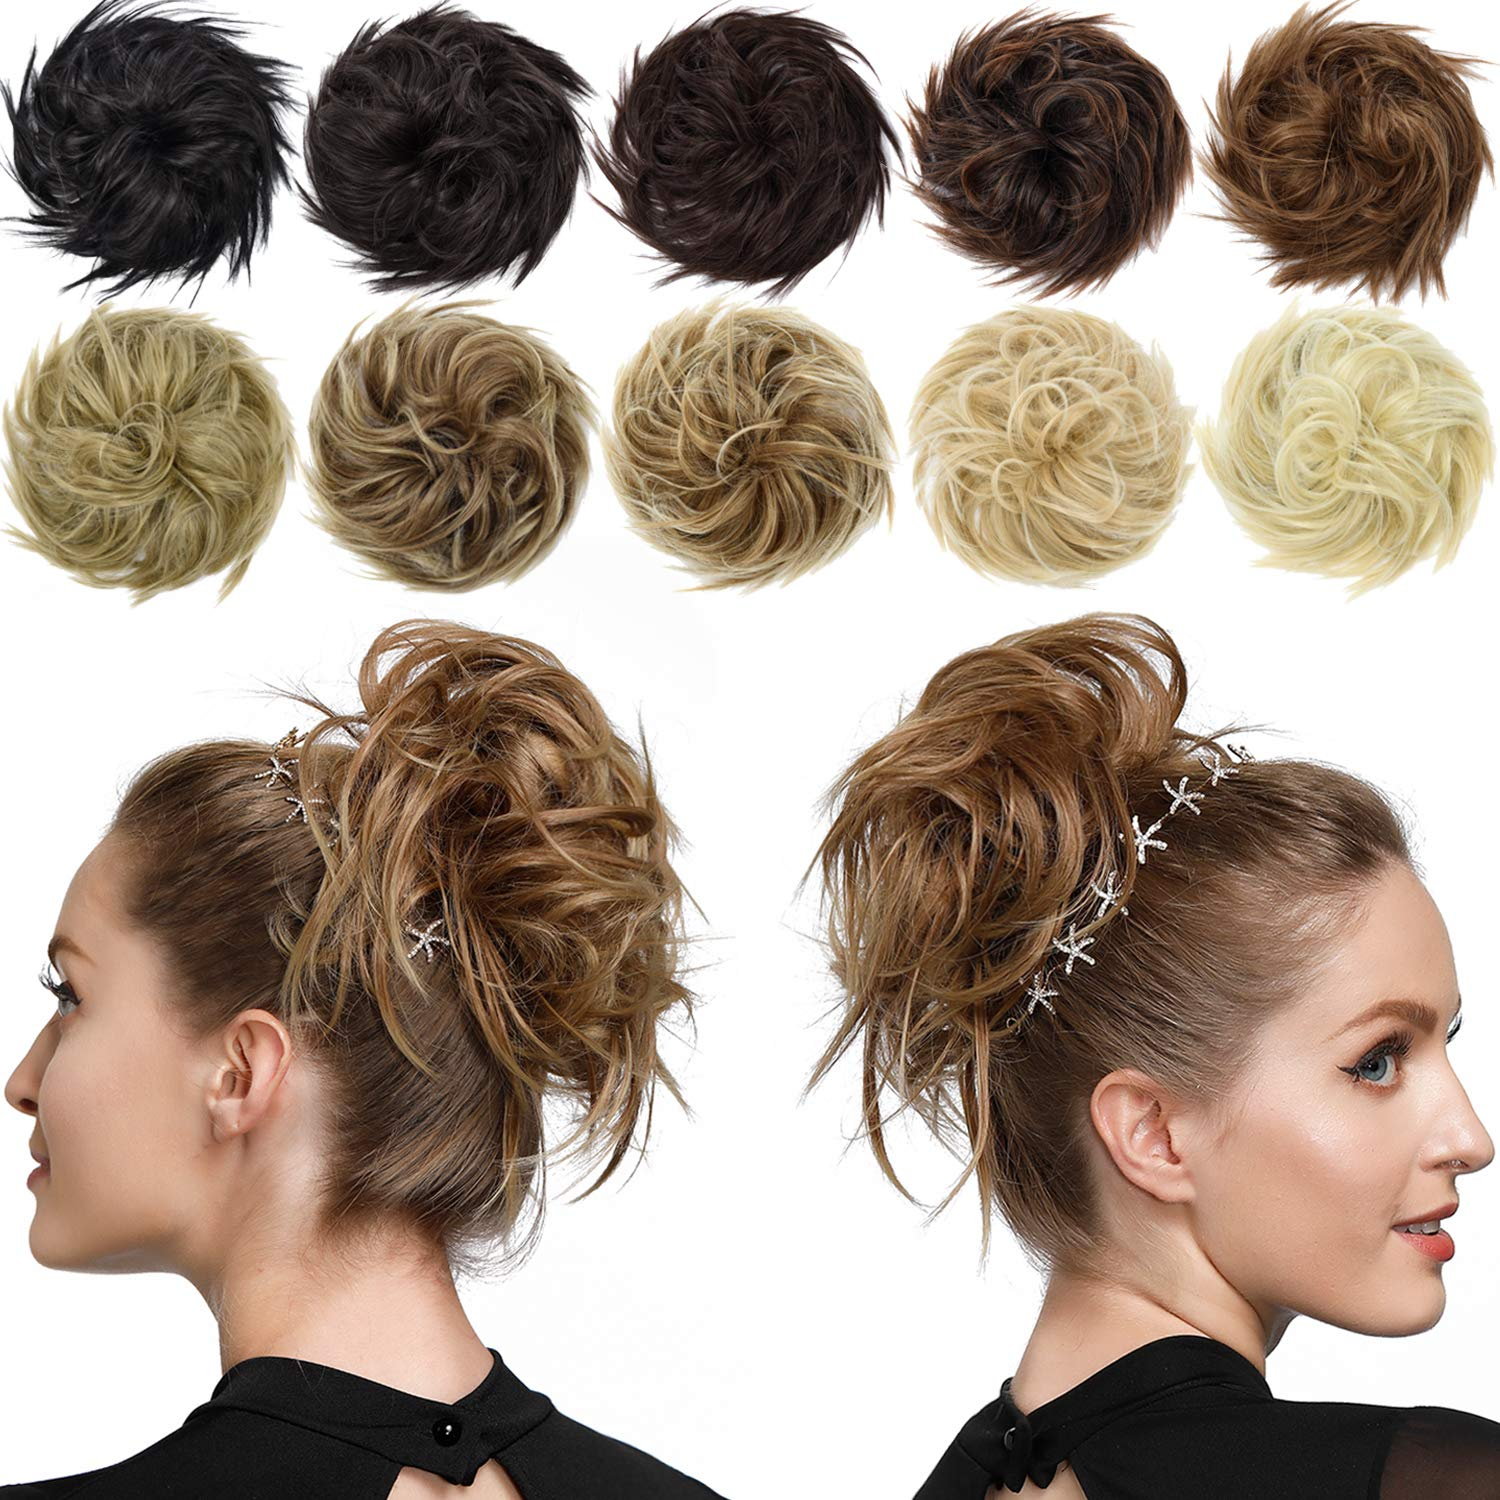 ROSEBUD Messy Bun Long Beach Mall Hair Piece Limited time cheap sale Scrunchy Extensions Synthetic T